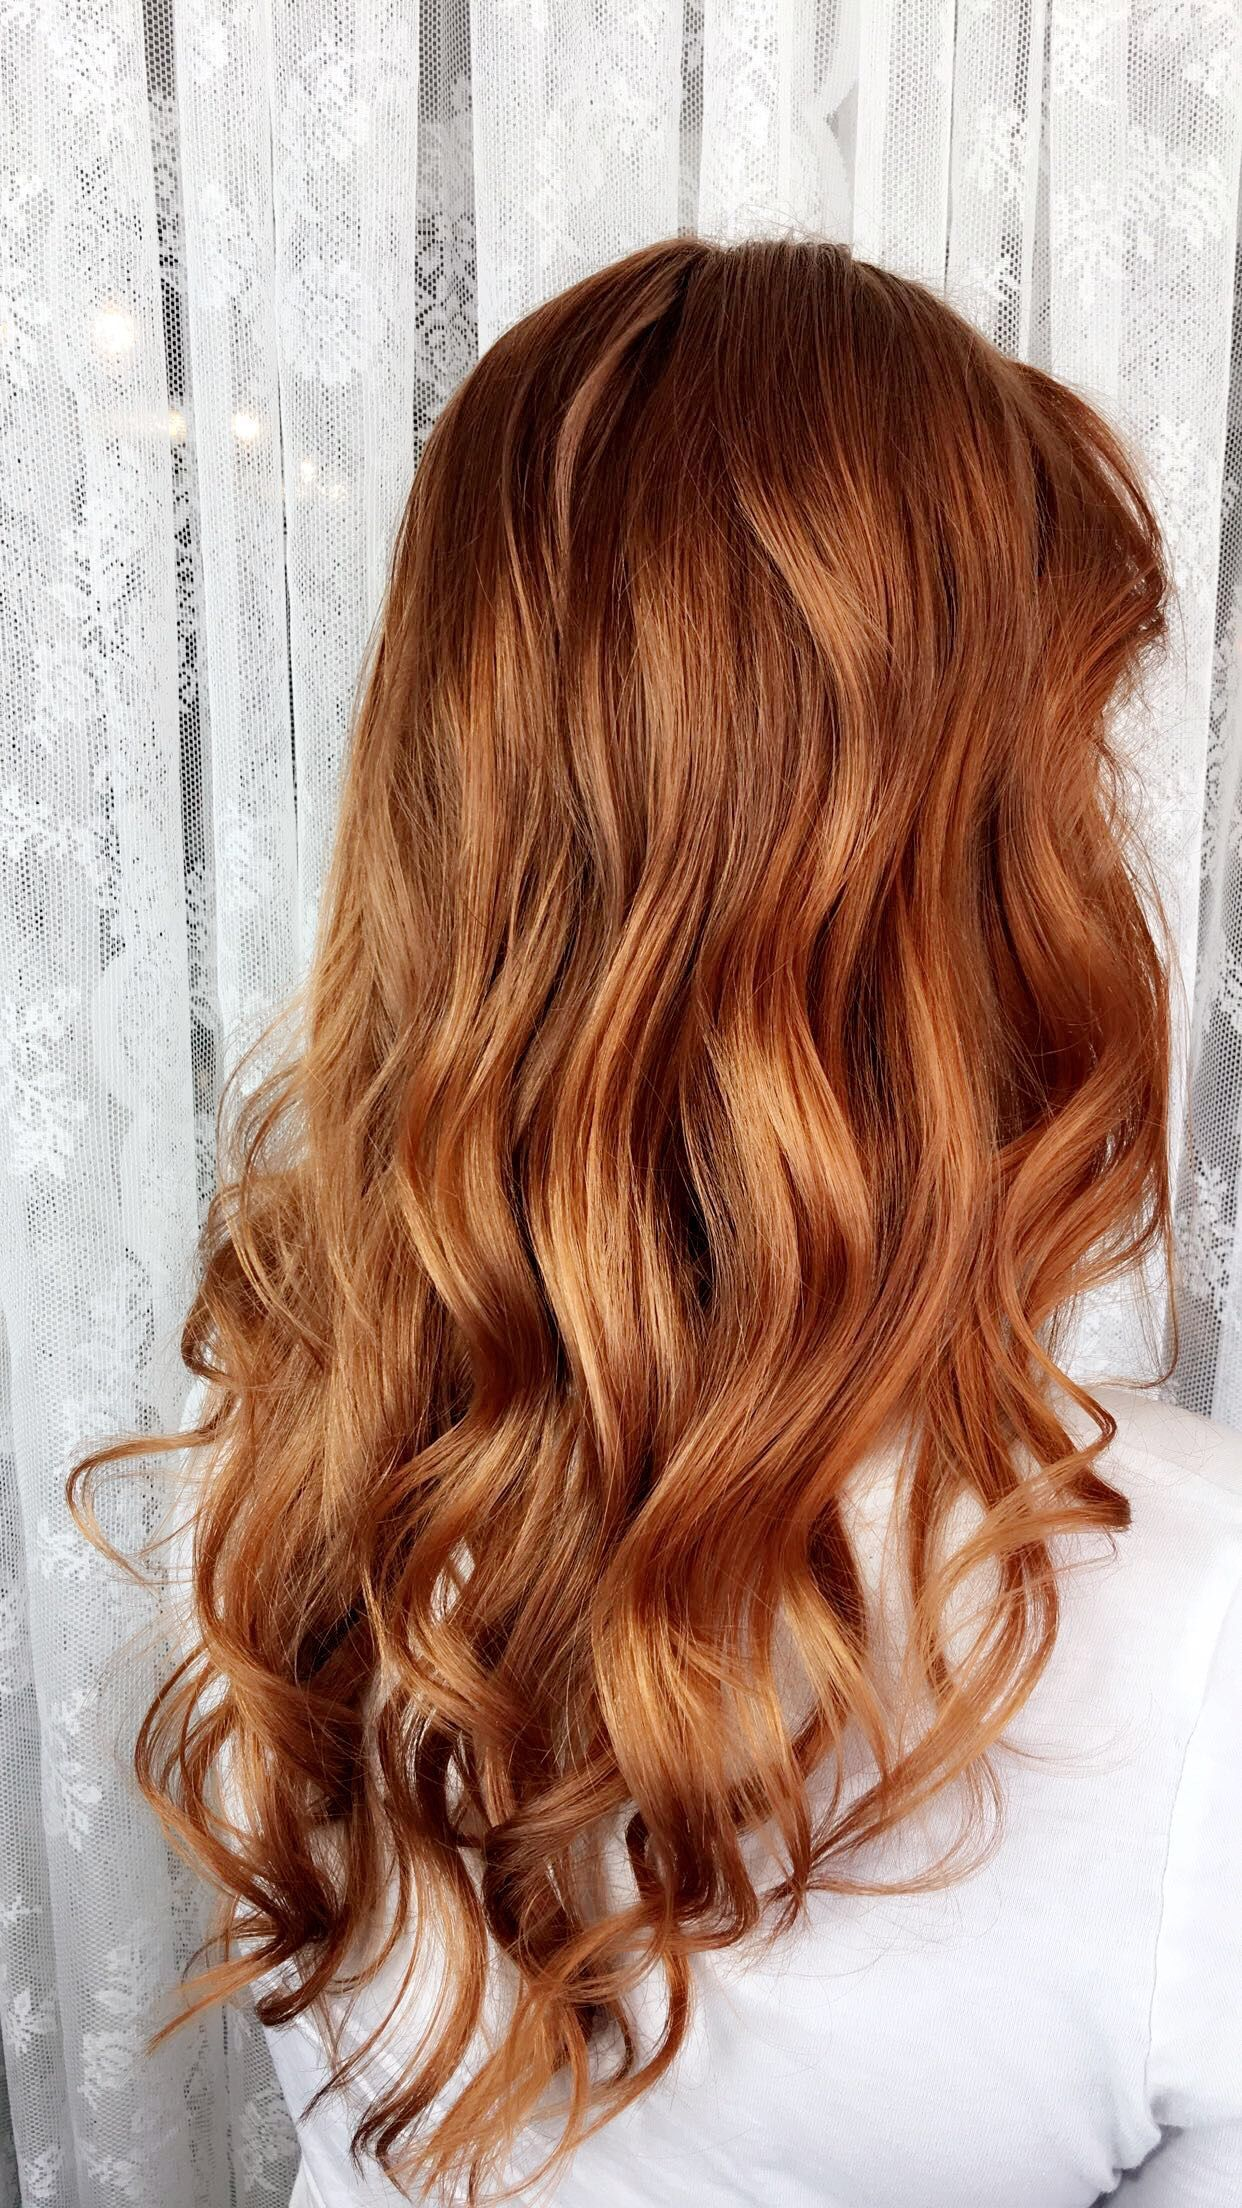 Asian Men Hairstyle Strawberry Blonde Hair Dyed Hair Red Hair Color